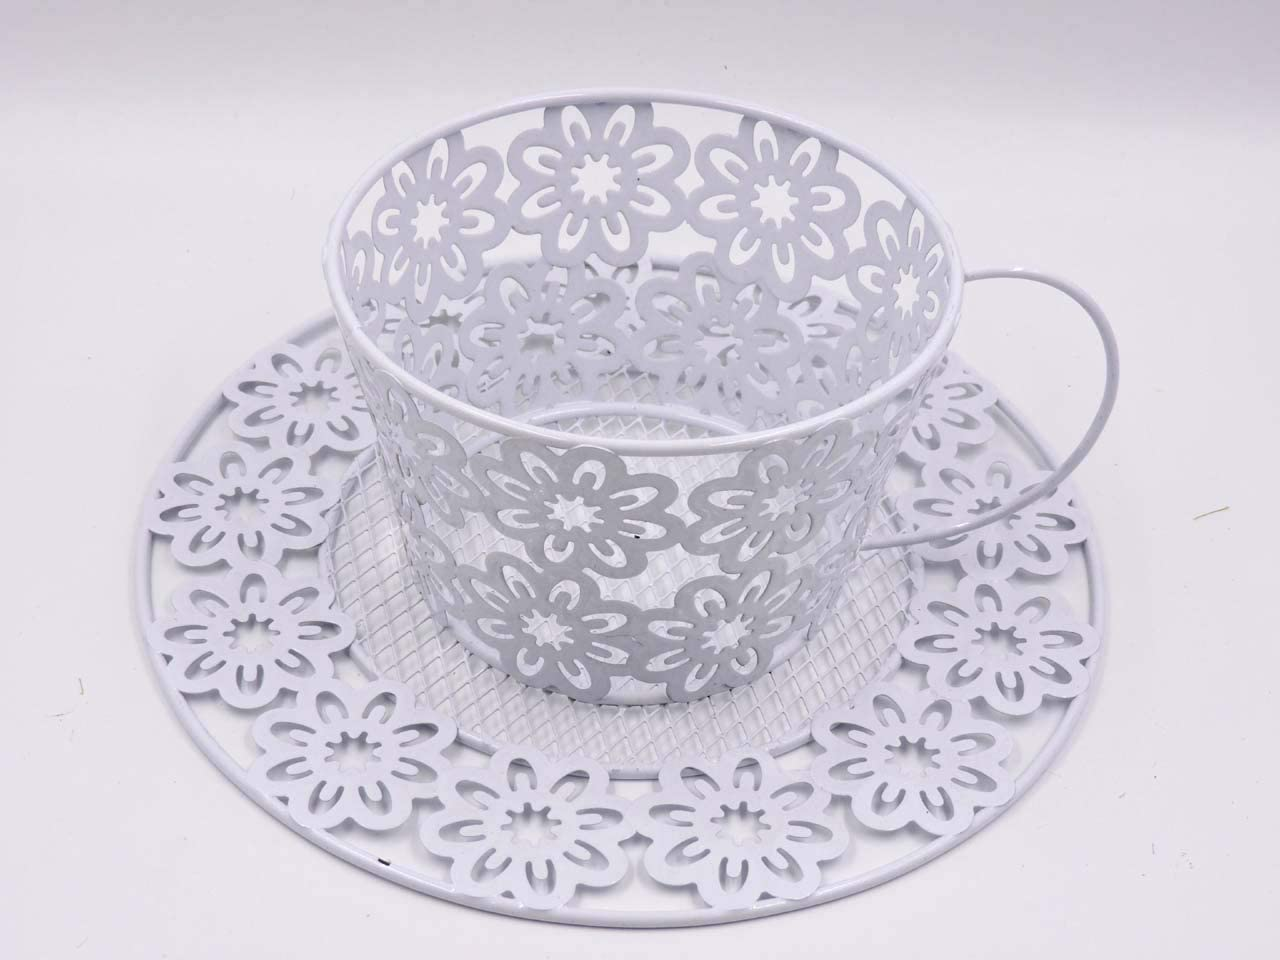 Shabby Chic Exquisite Tea Cup Shaped Floral Planter in White Color Wrought Iron, Home Decor